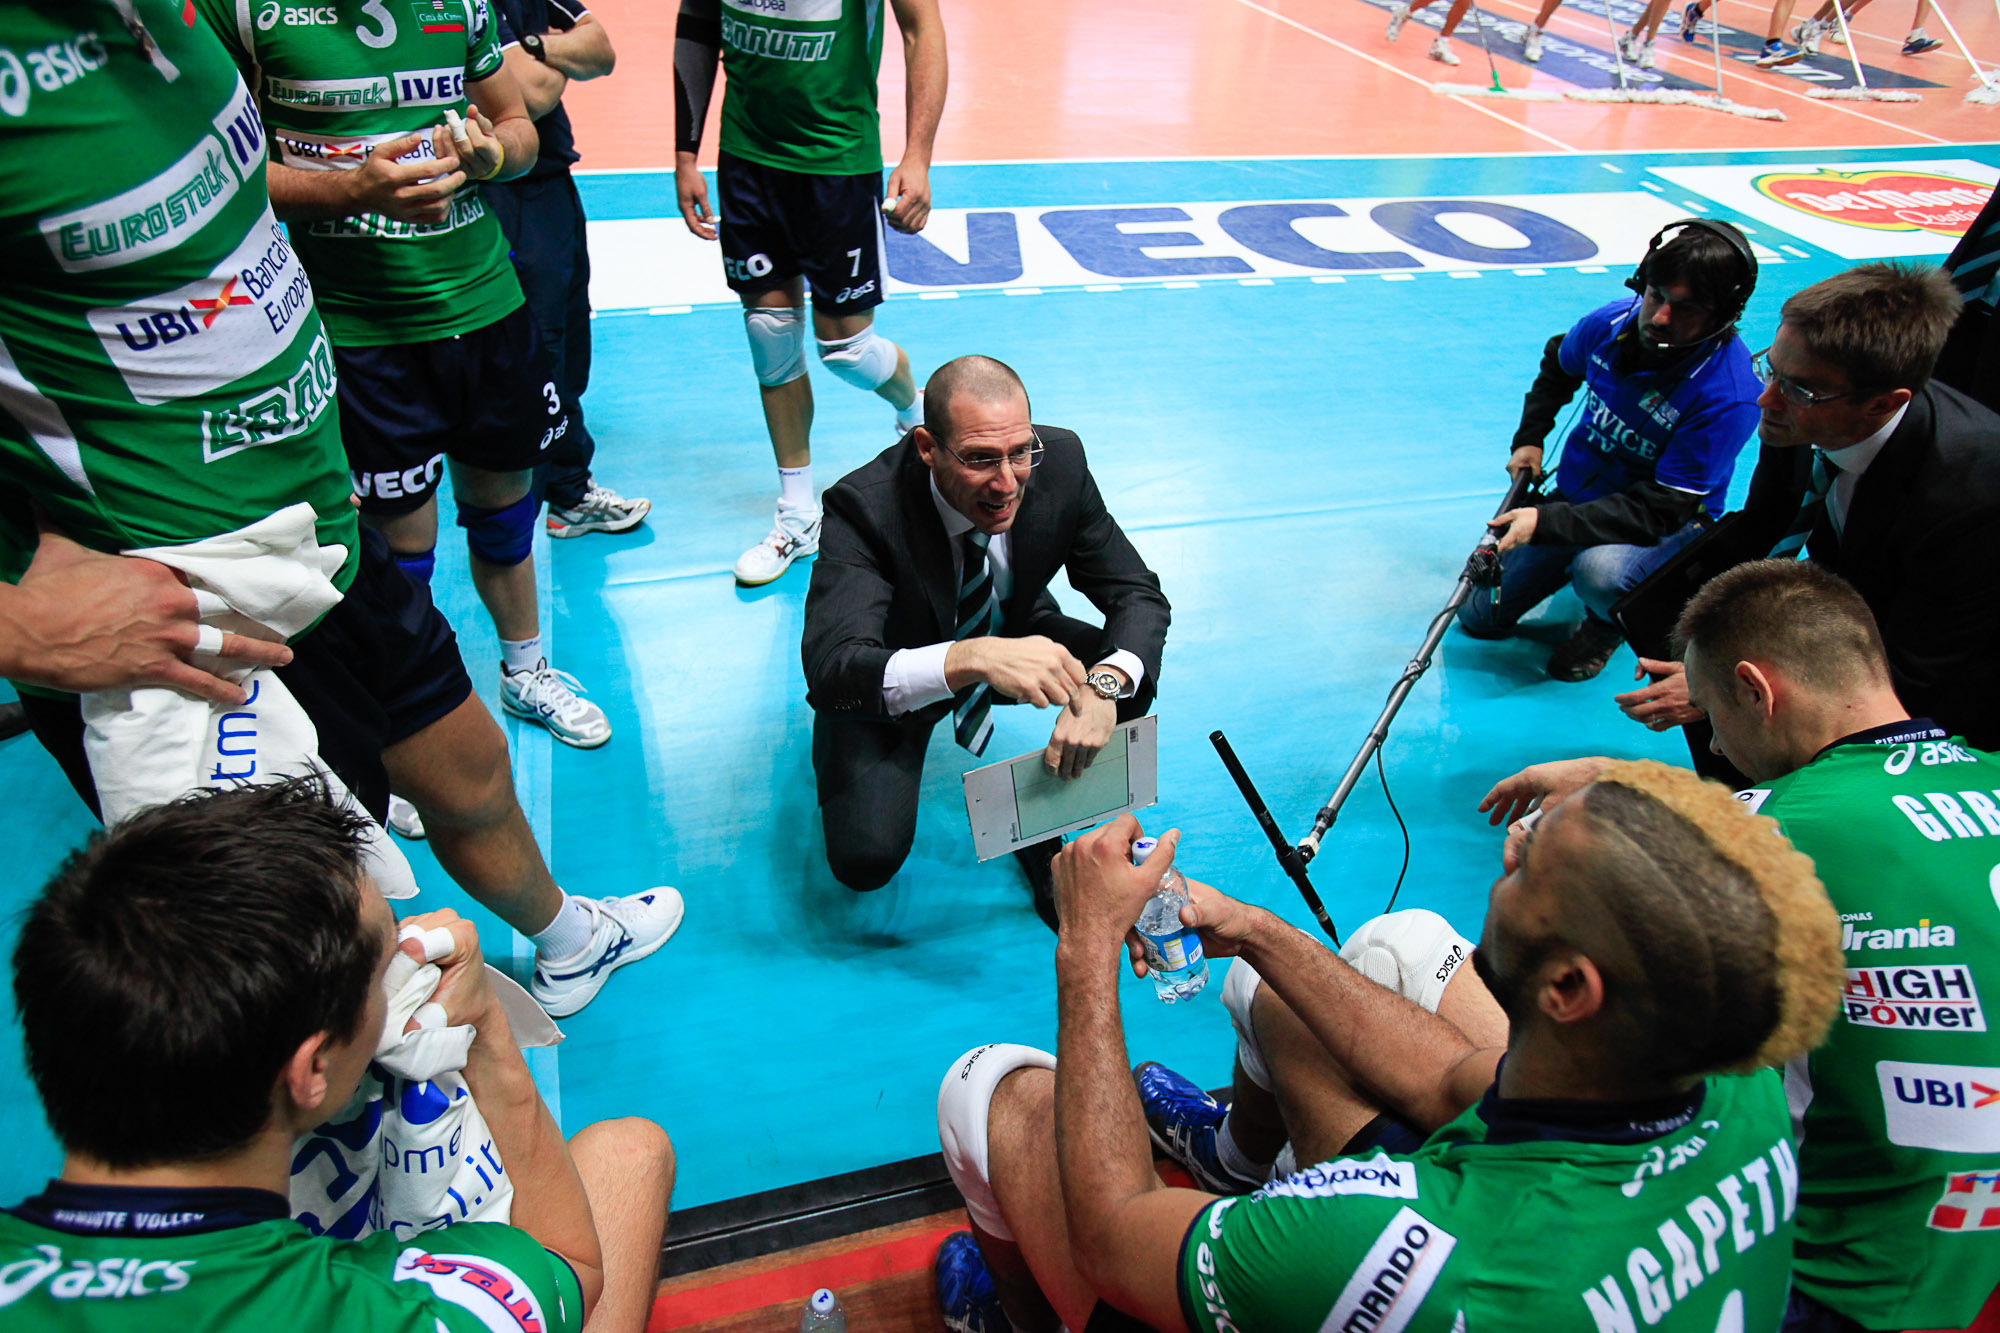 Cuneo_Volley_Champions_Maschile